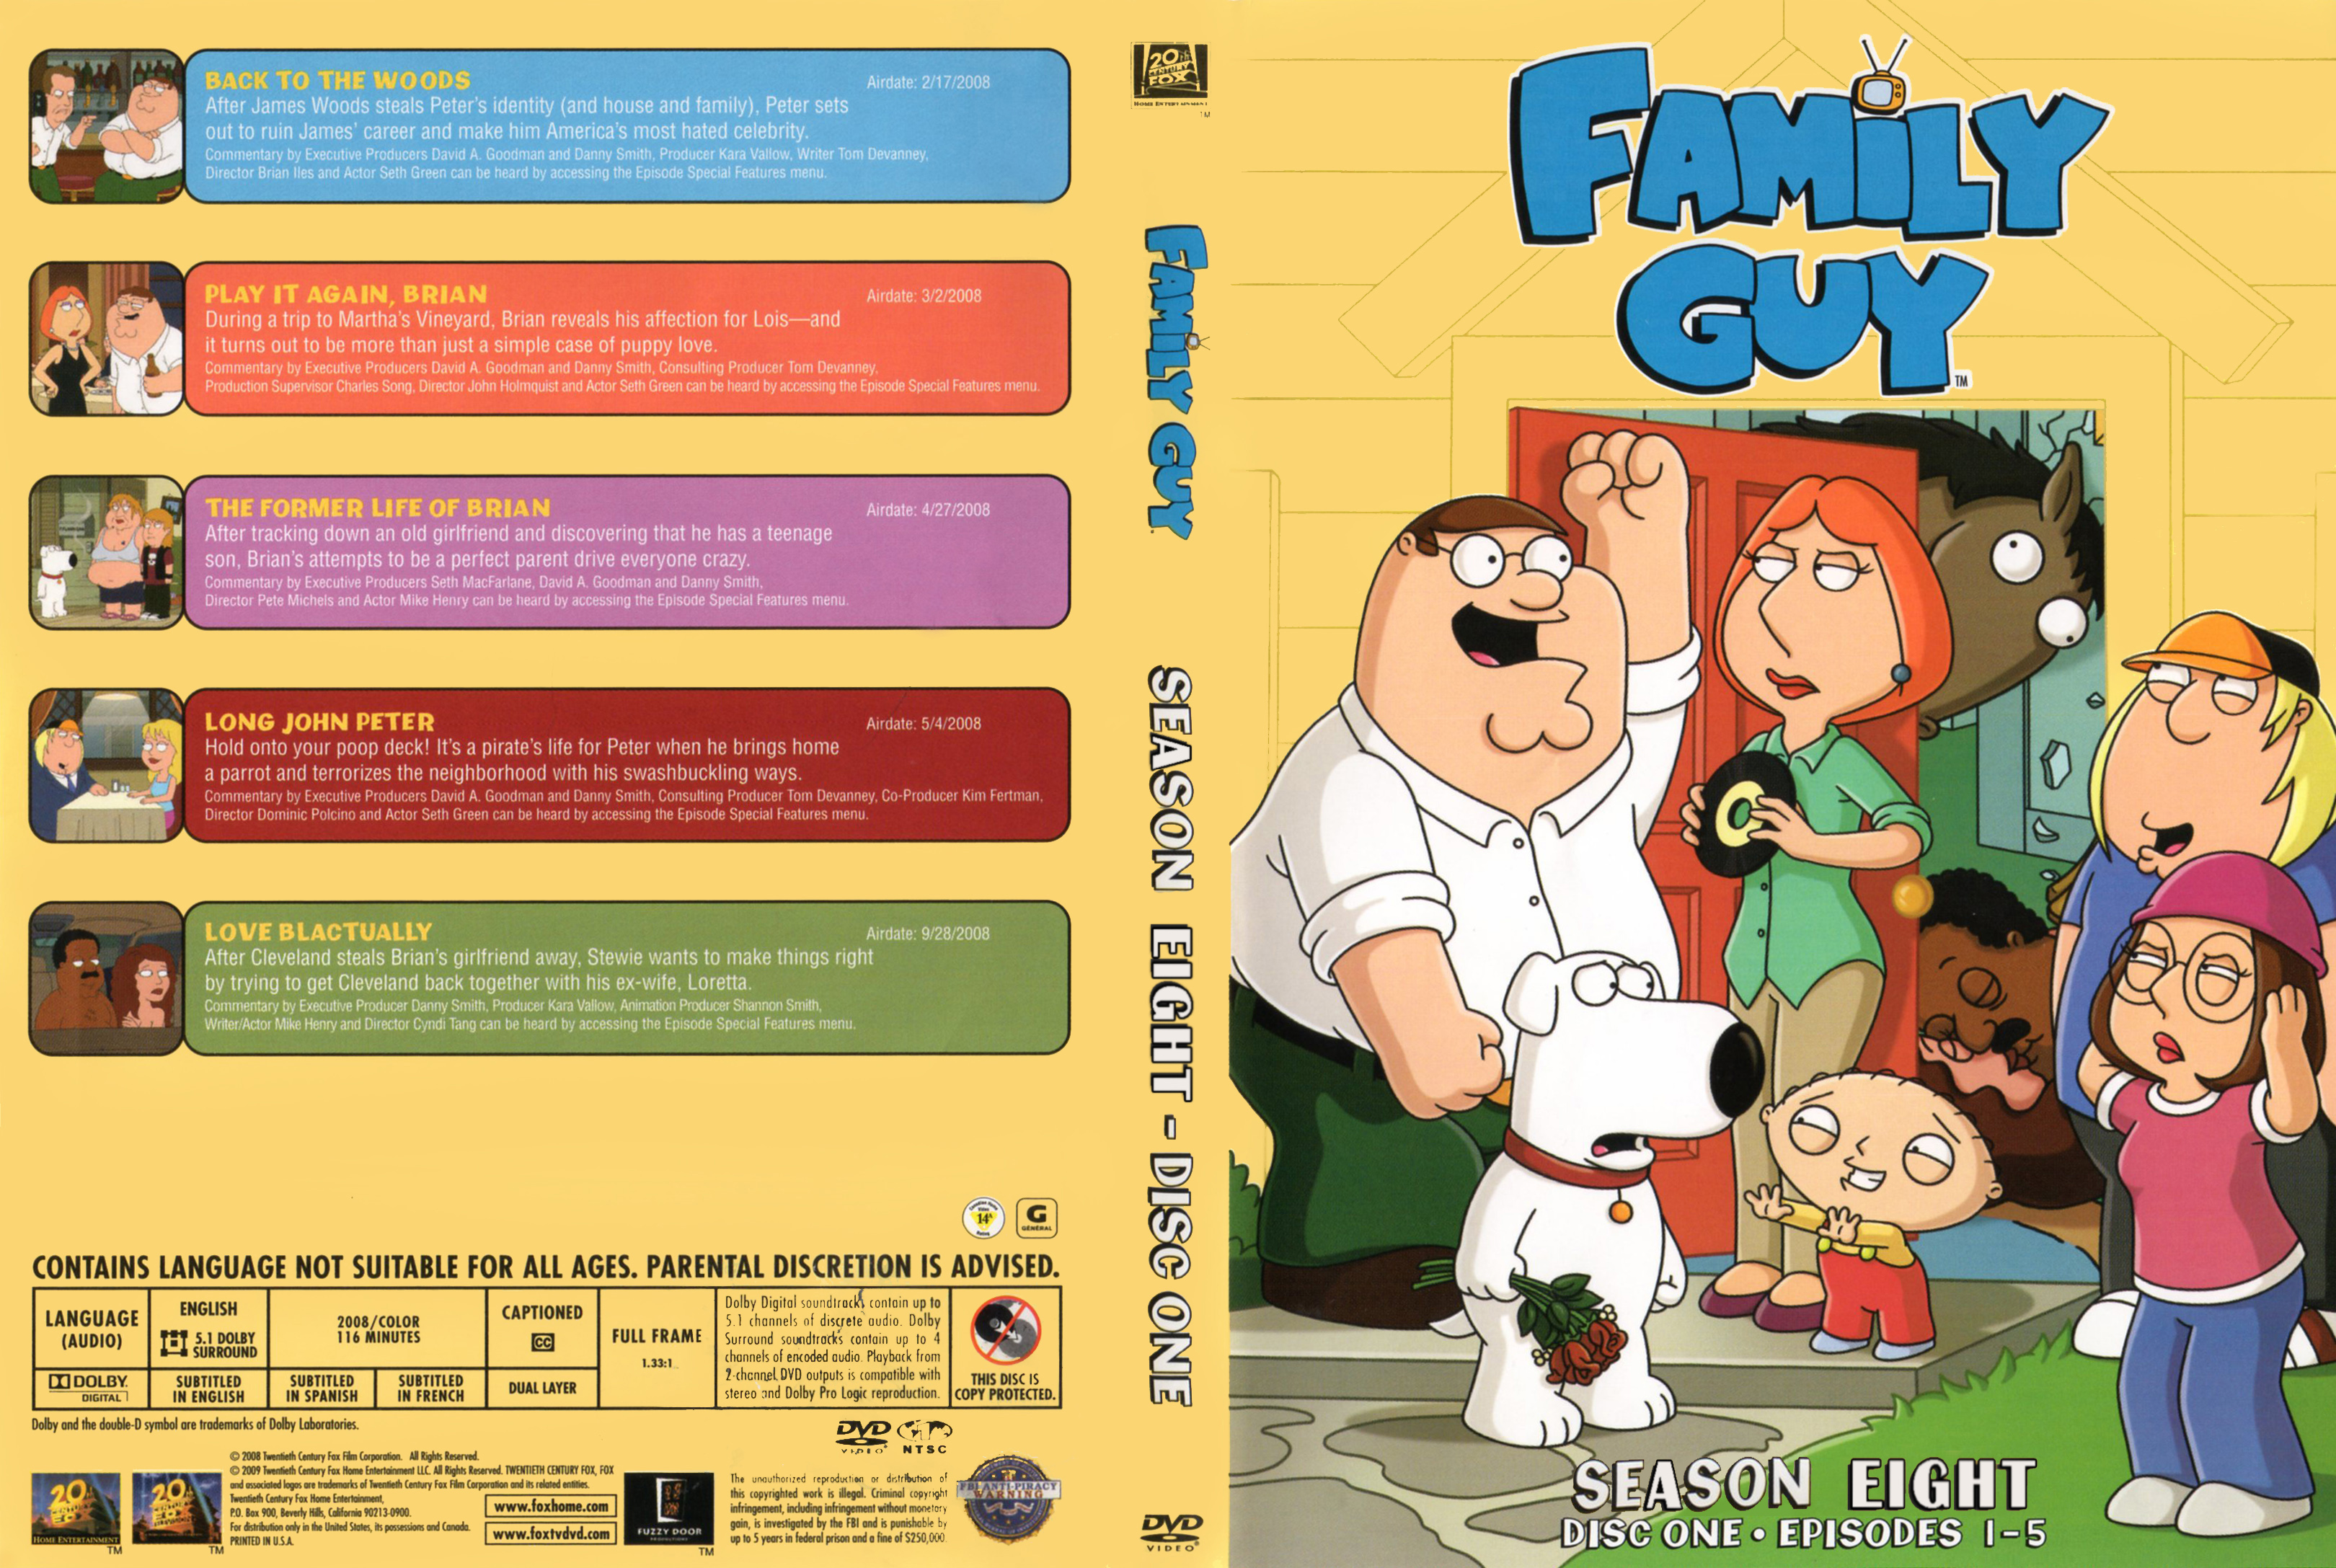 family guy season 17 episode 1 download